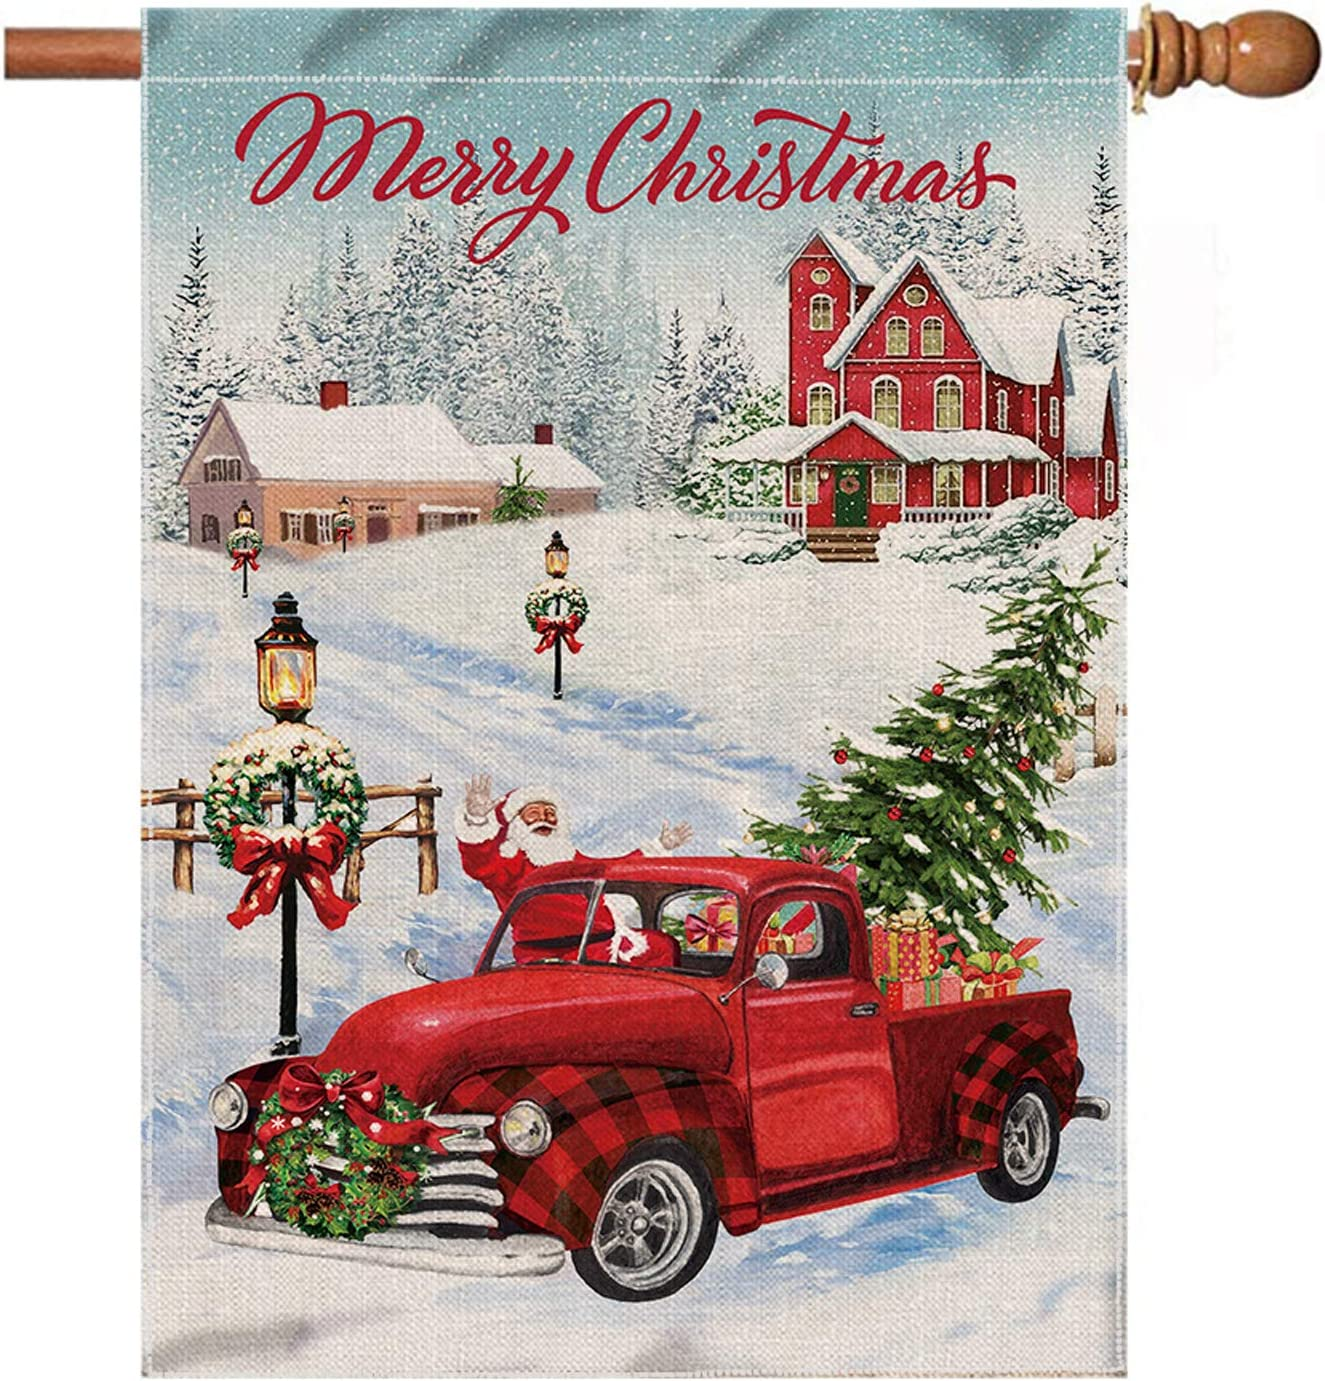 Hexagram Christmas House Flag 28 X 40 Inch Double Sided Red Truck Burlap Flags For Christmas Outdoor Decor Winter Holiday Decorative Yard Large Flags Garden Outdoor